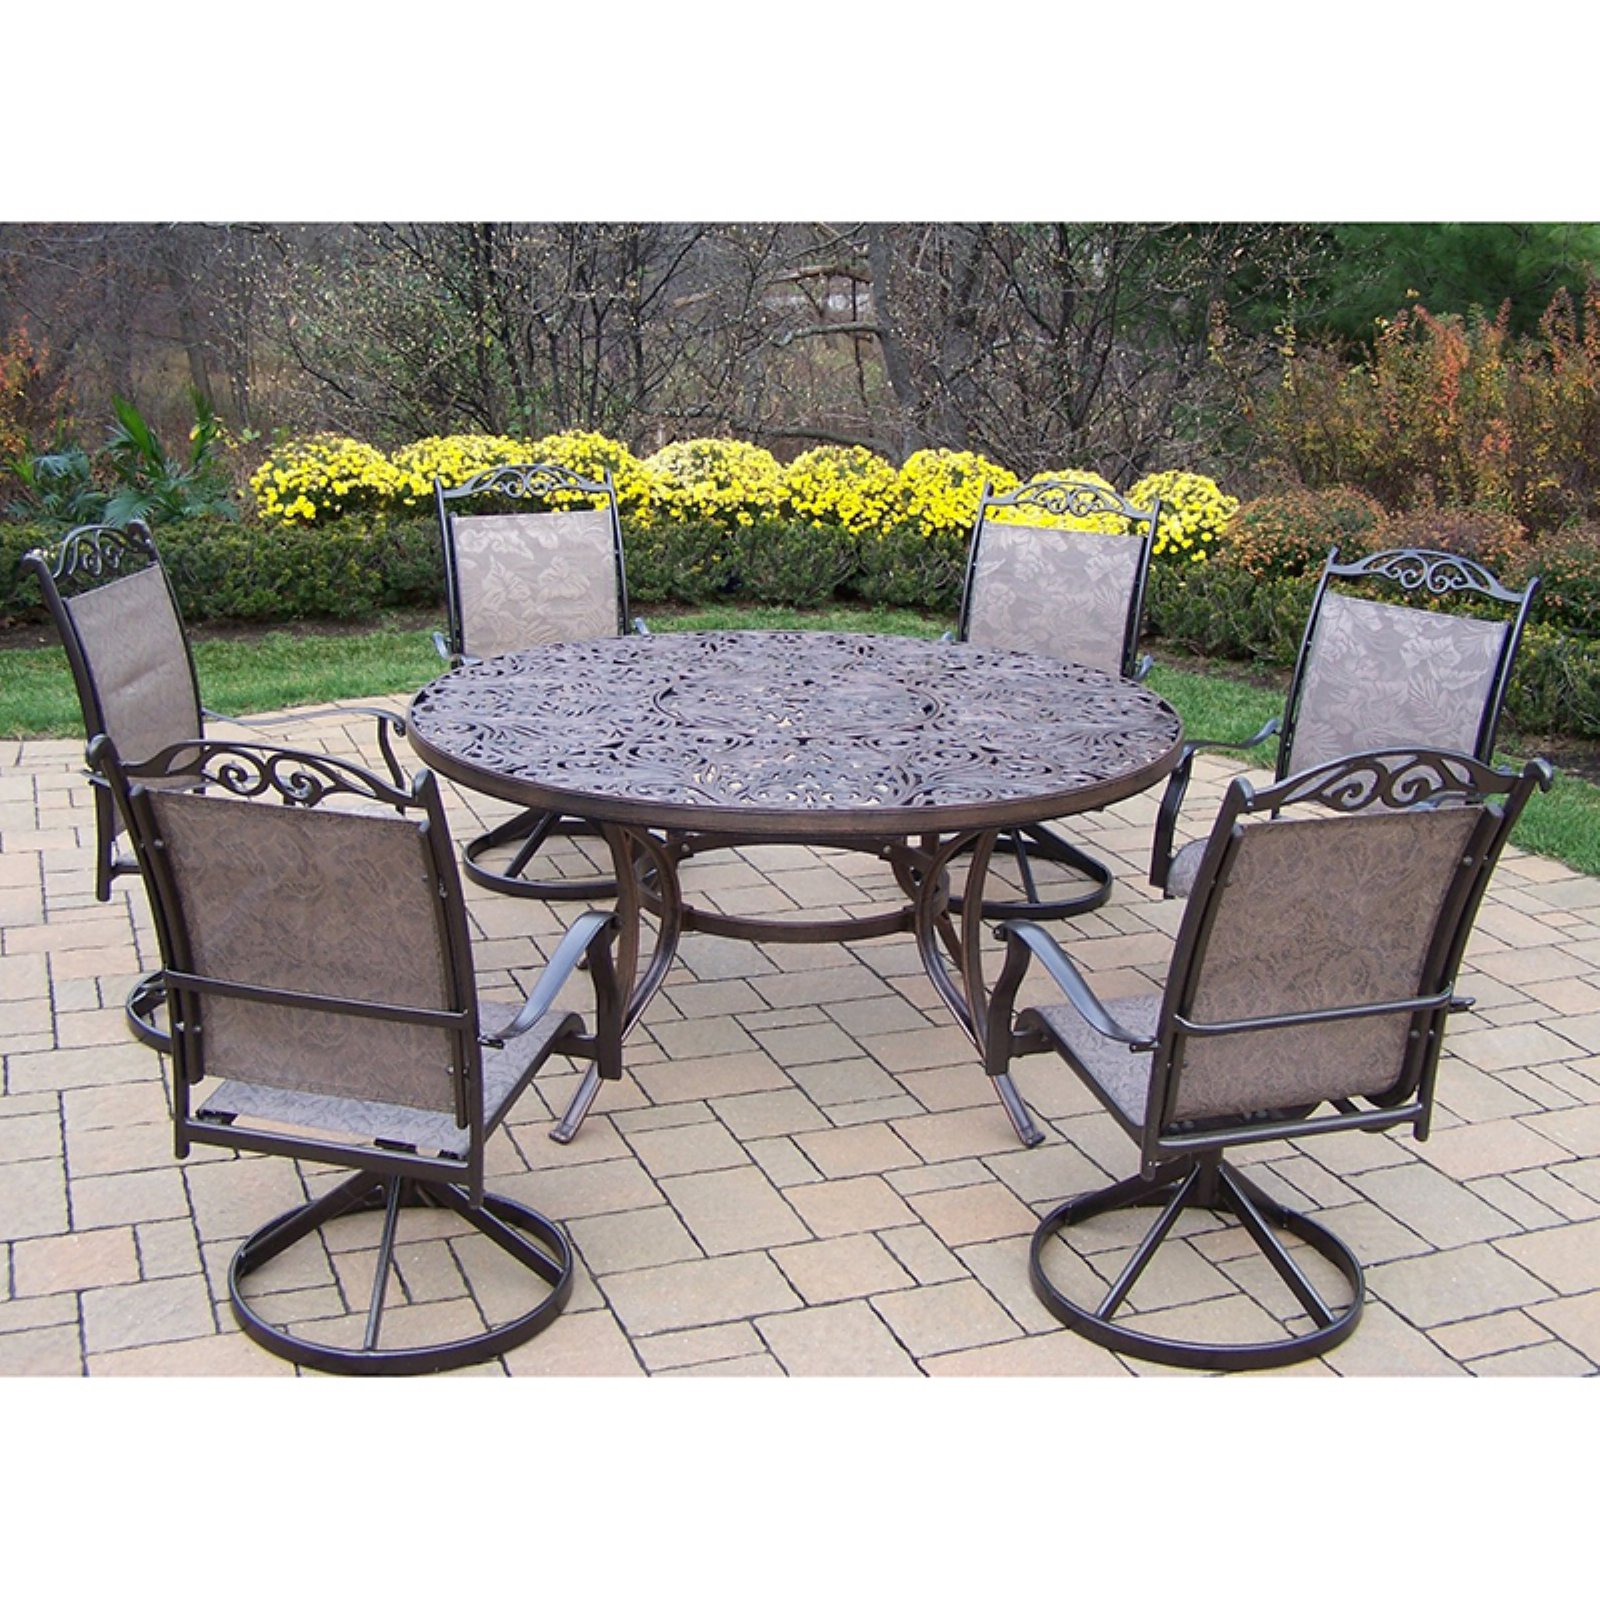 Oakland Living Mississippi Cascade 60 in. Swivel Sling Patio Dining Set - Seats 6